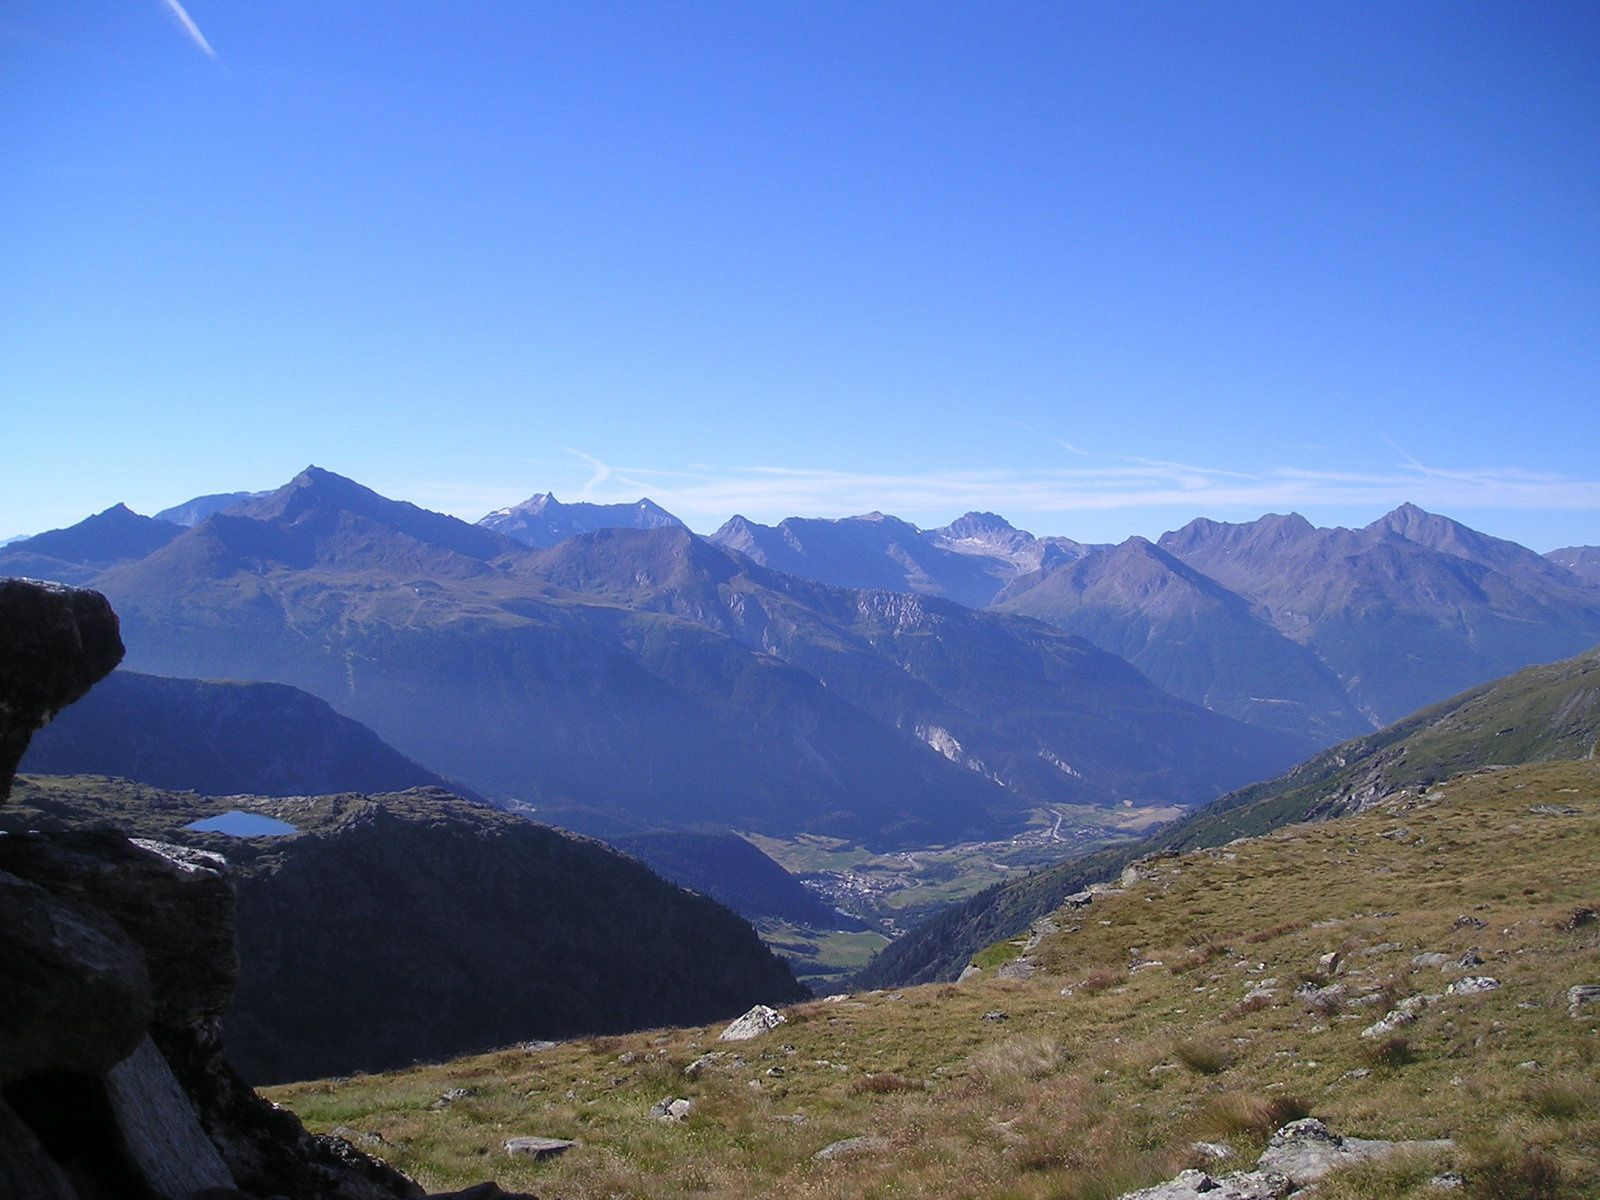 Le massif de la Vanoise, à partir de Termignon. Photo by Galano, CC BY-SA 3.0. From Commons Wikimedia.org